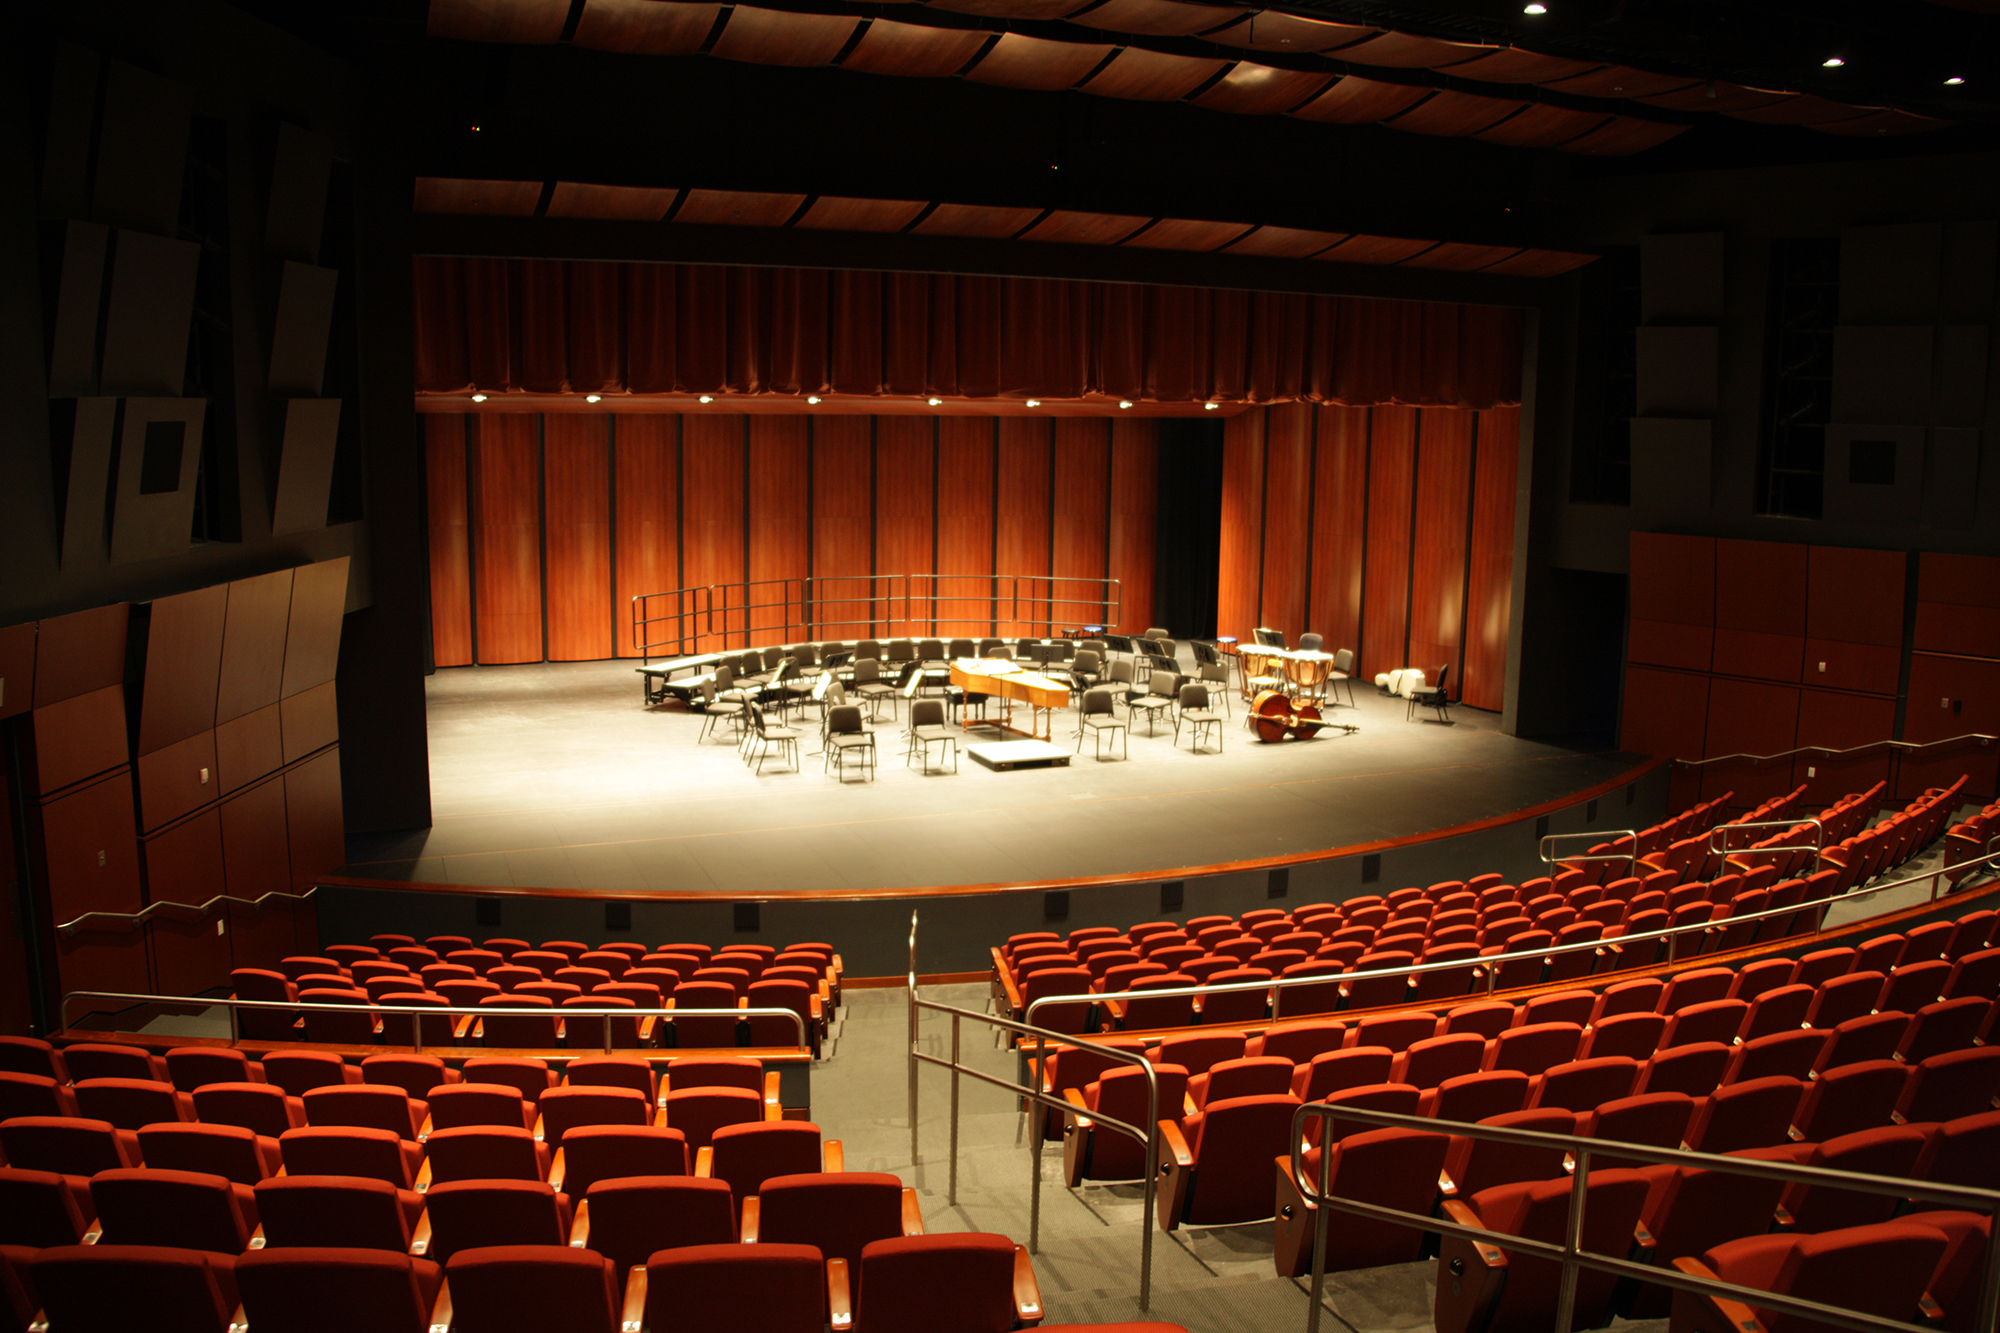 Interior of Bankhead Theater with stage and seating.